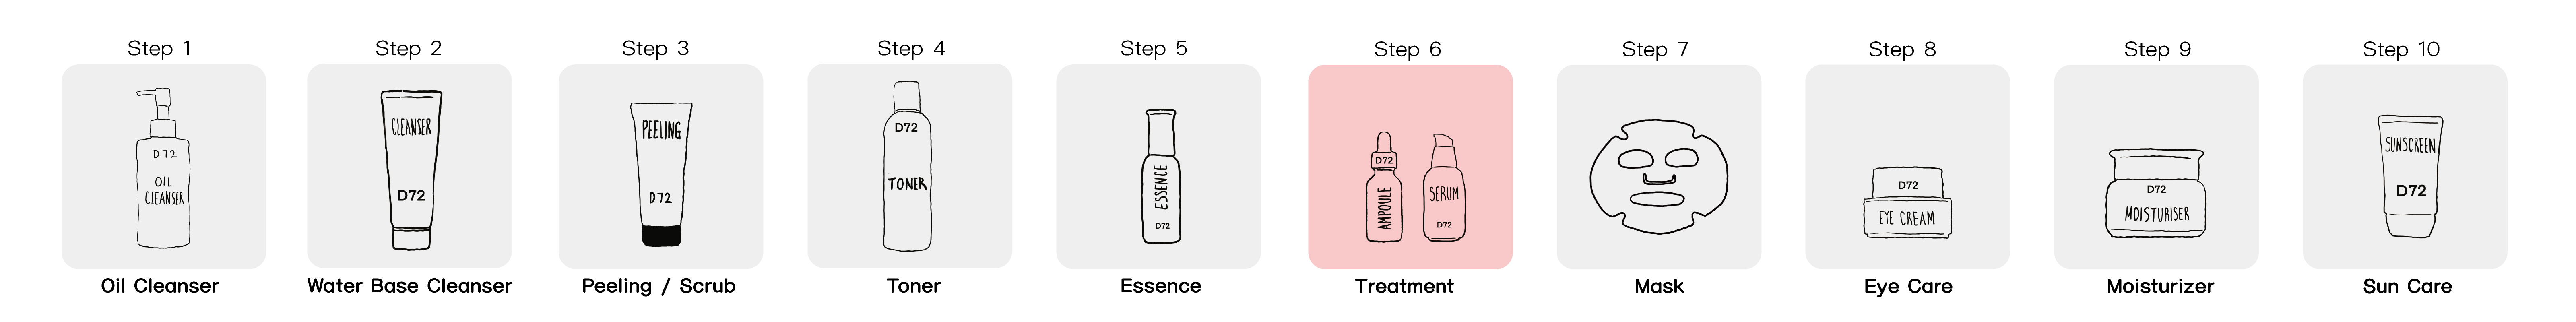 step6-treatment.jpg